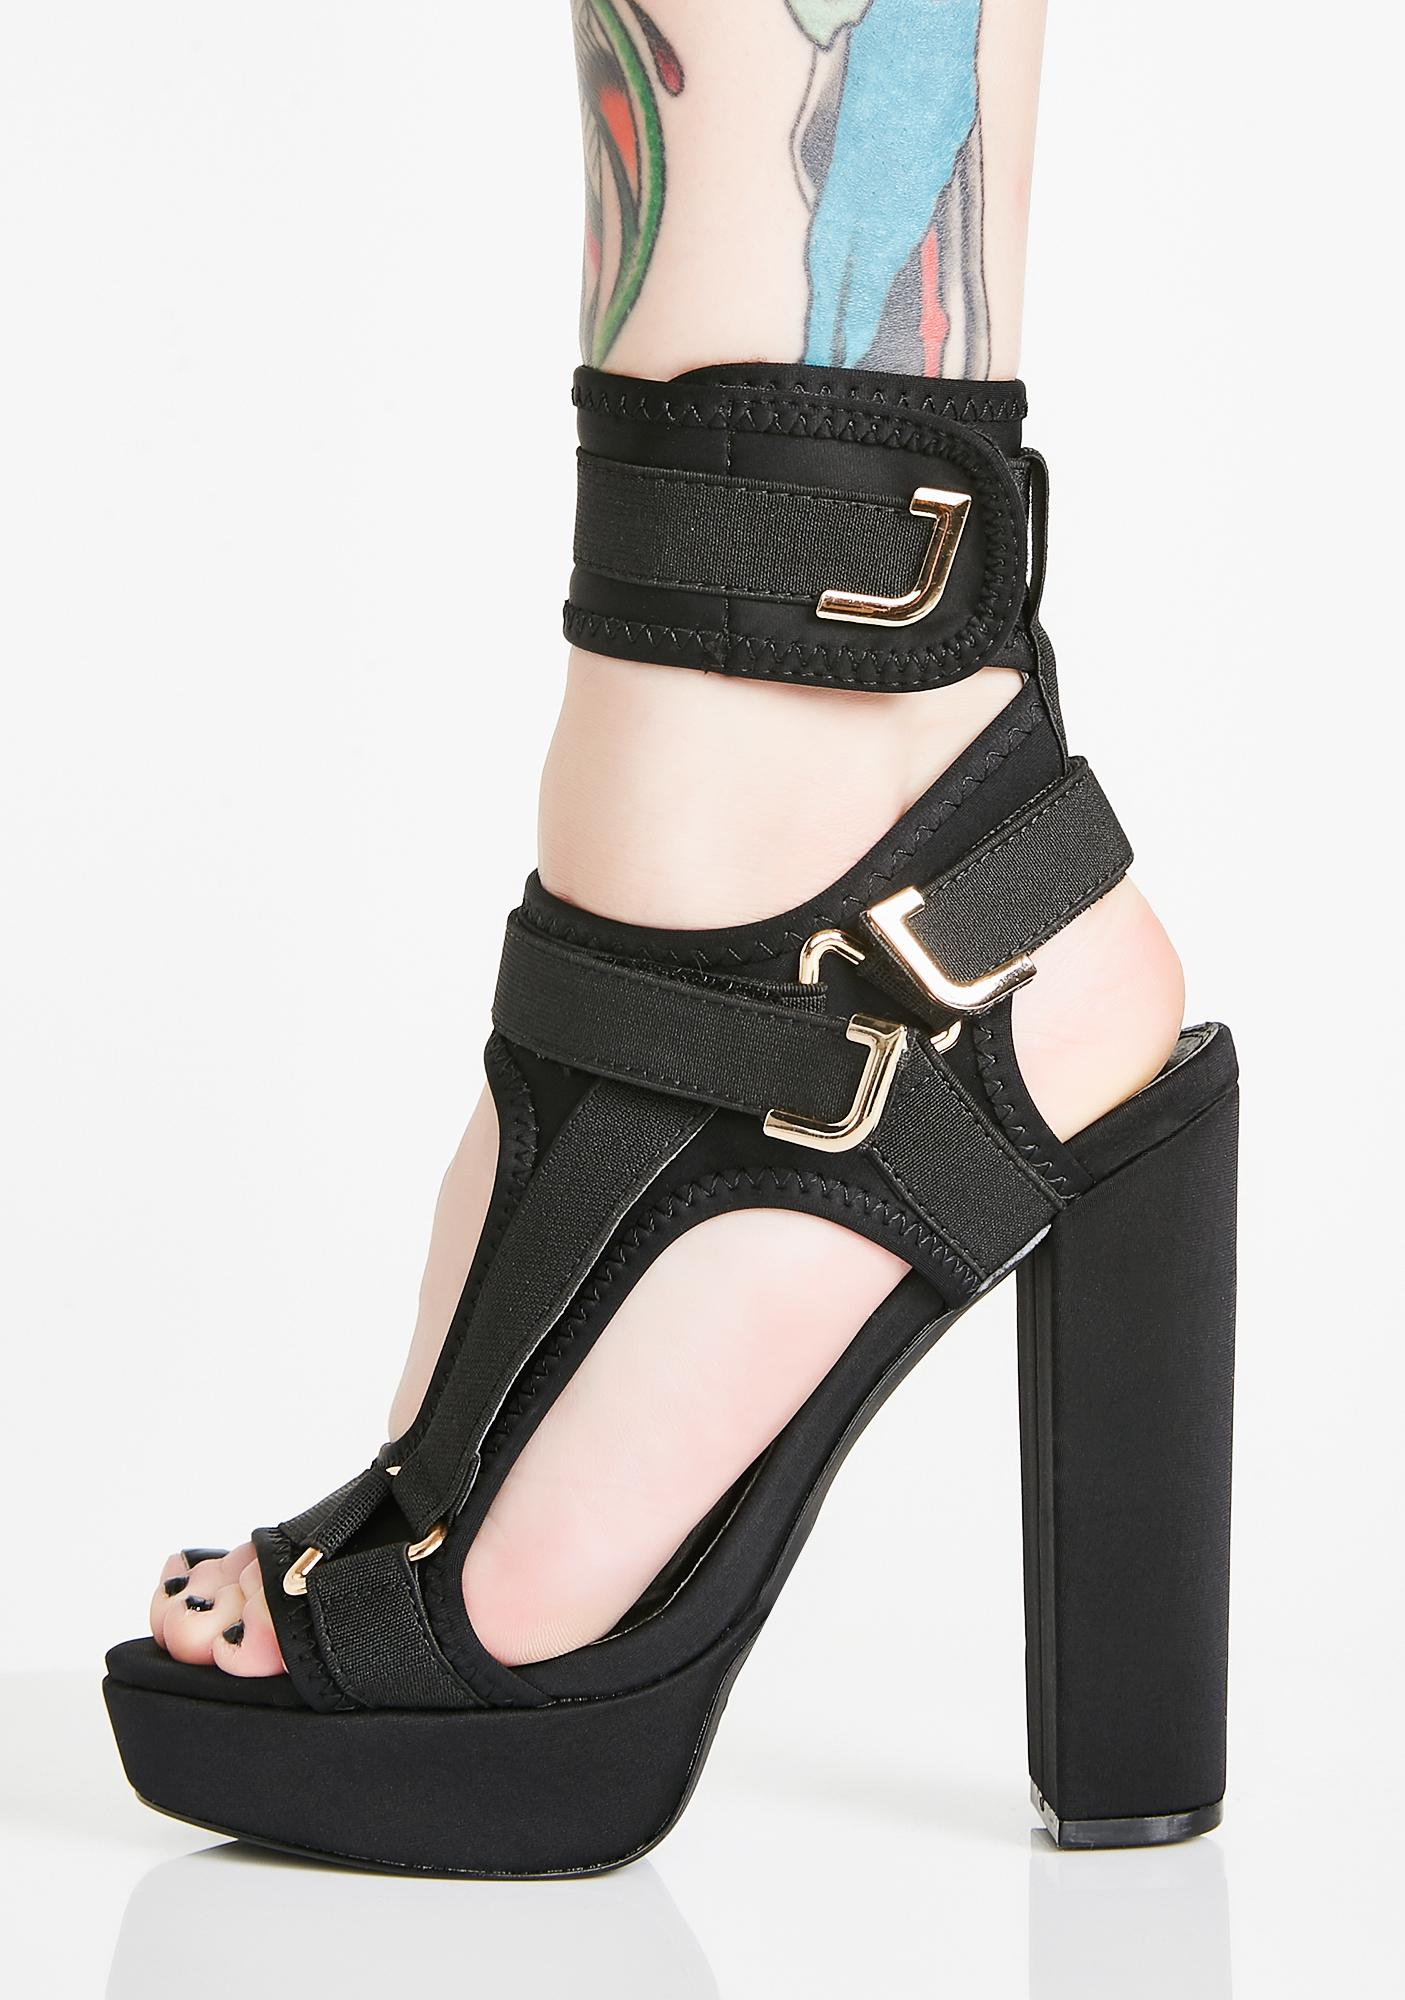 Dark Ready For Take Off Strappy Heels